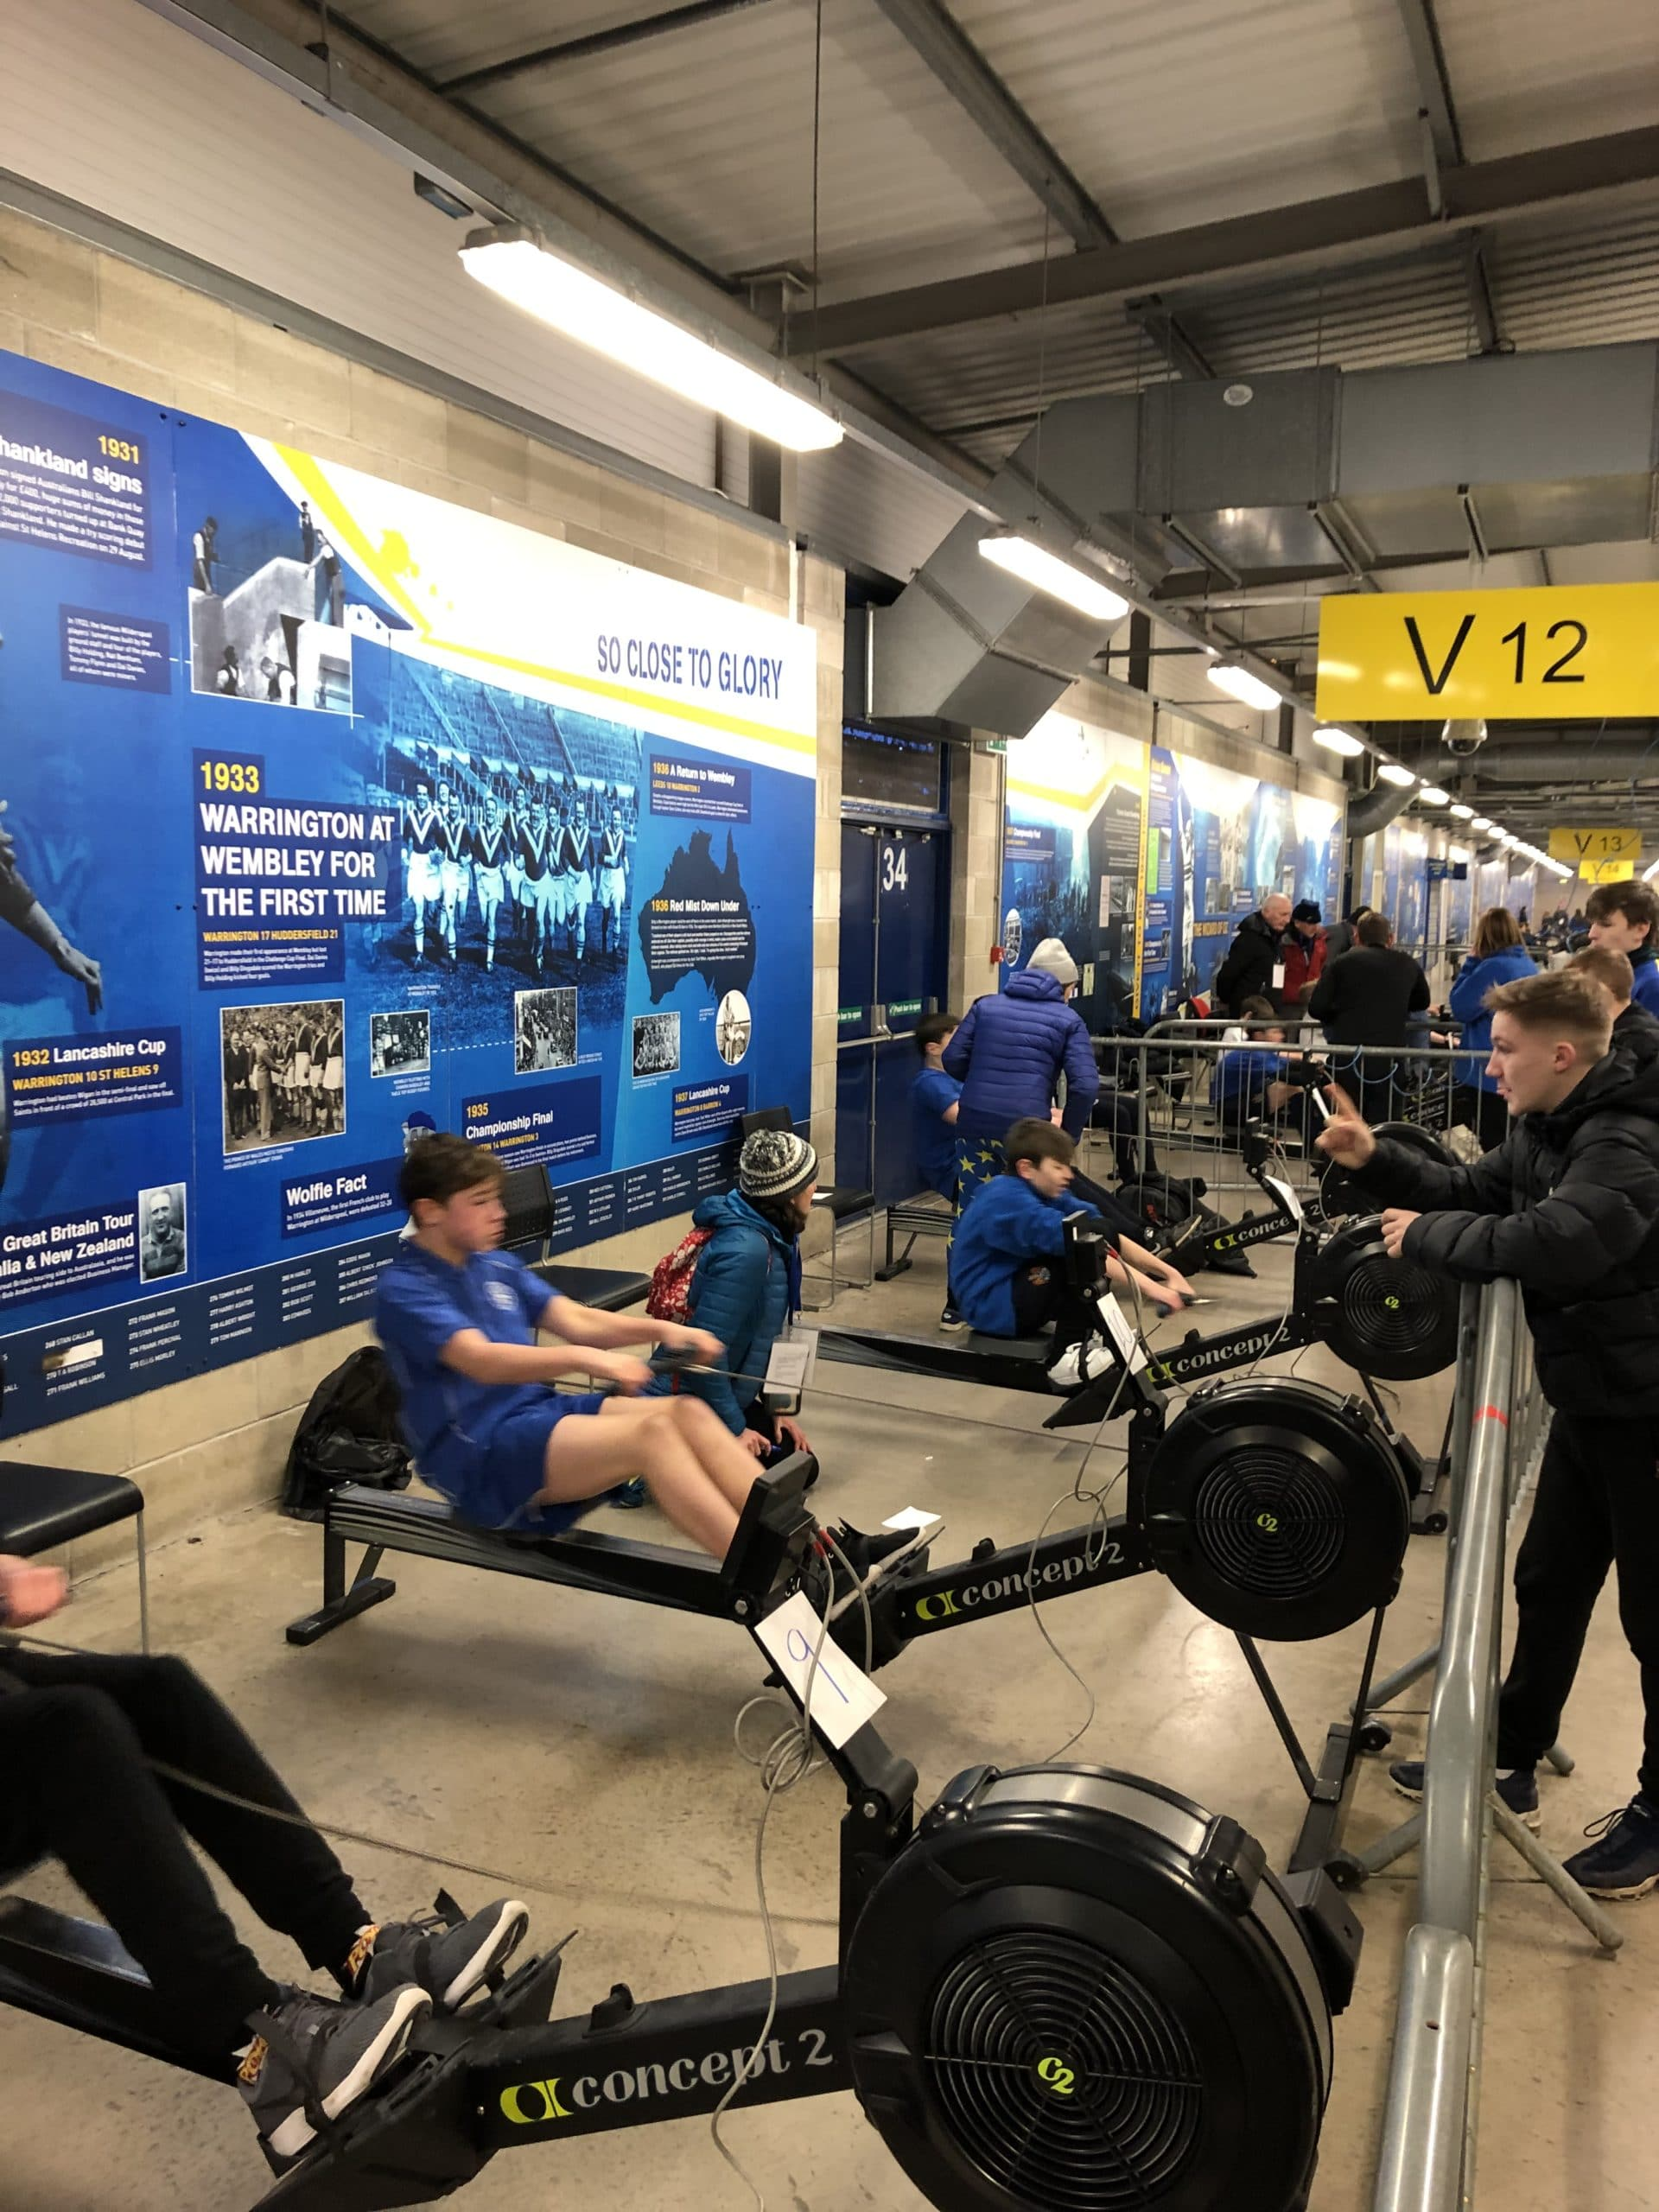 Halliwell Jones Indoor Rowing